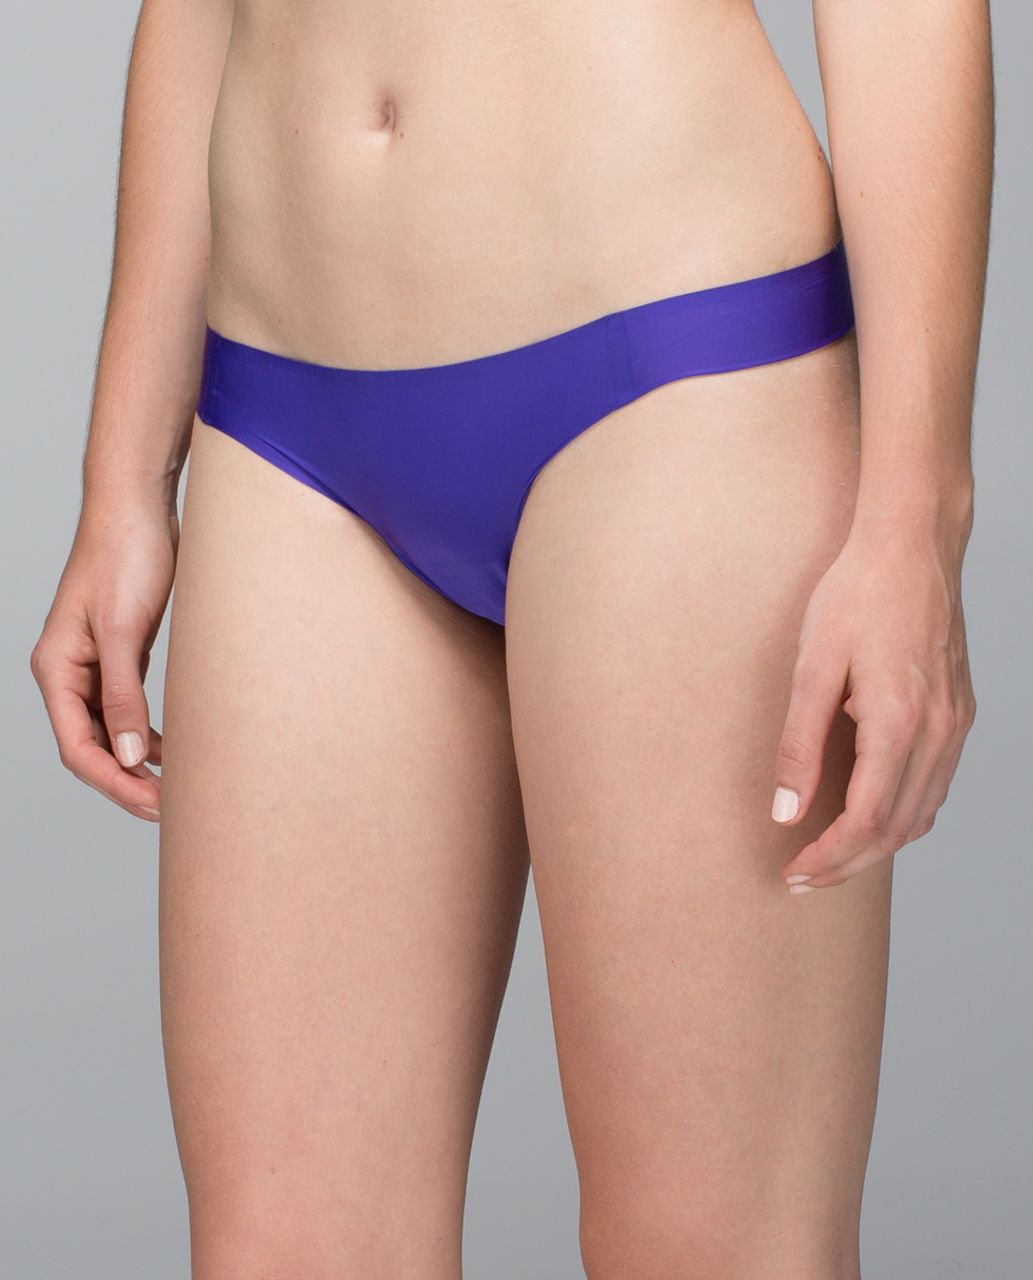 Lululemon Light As Air Thong - Bruised Berry